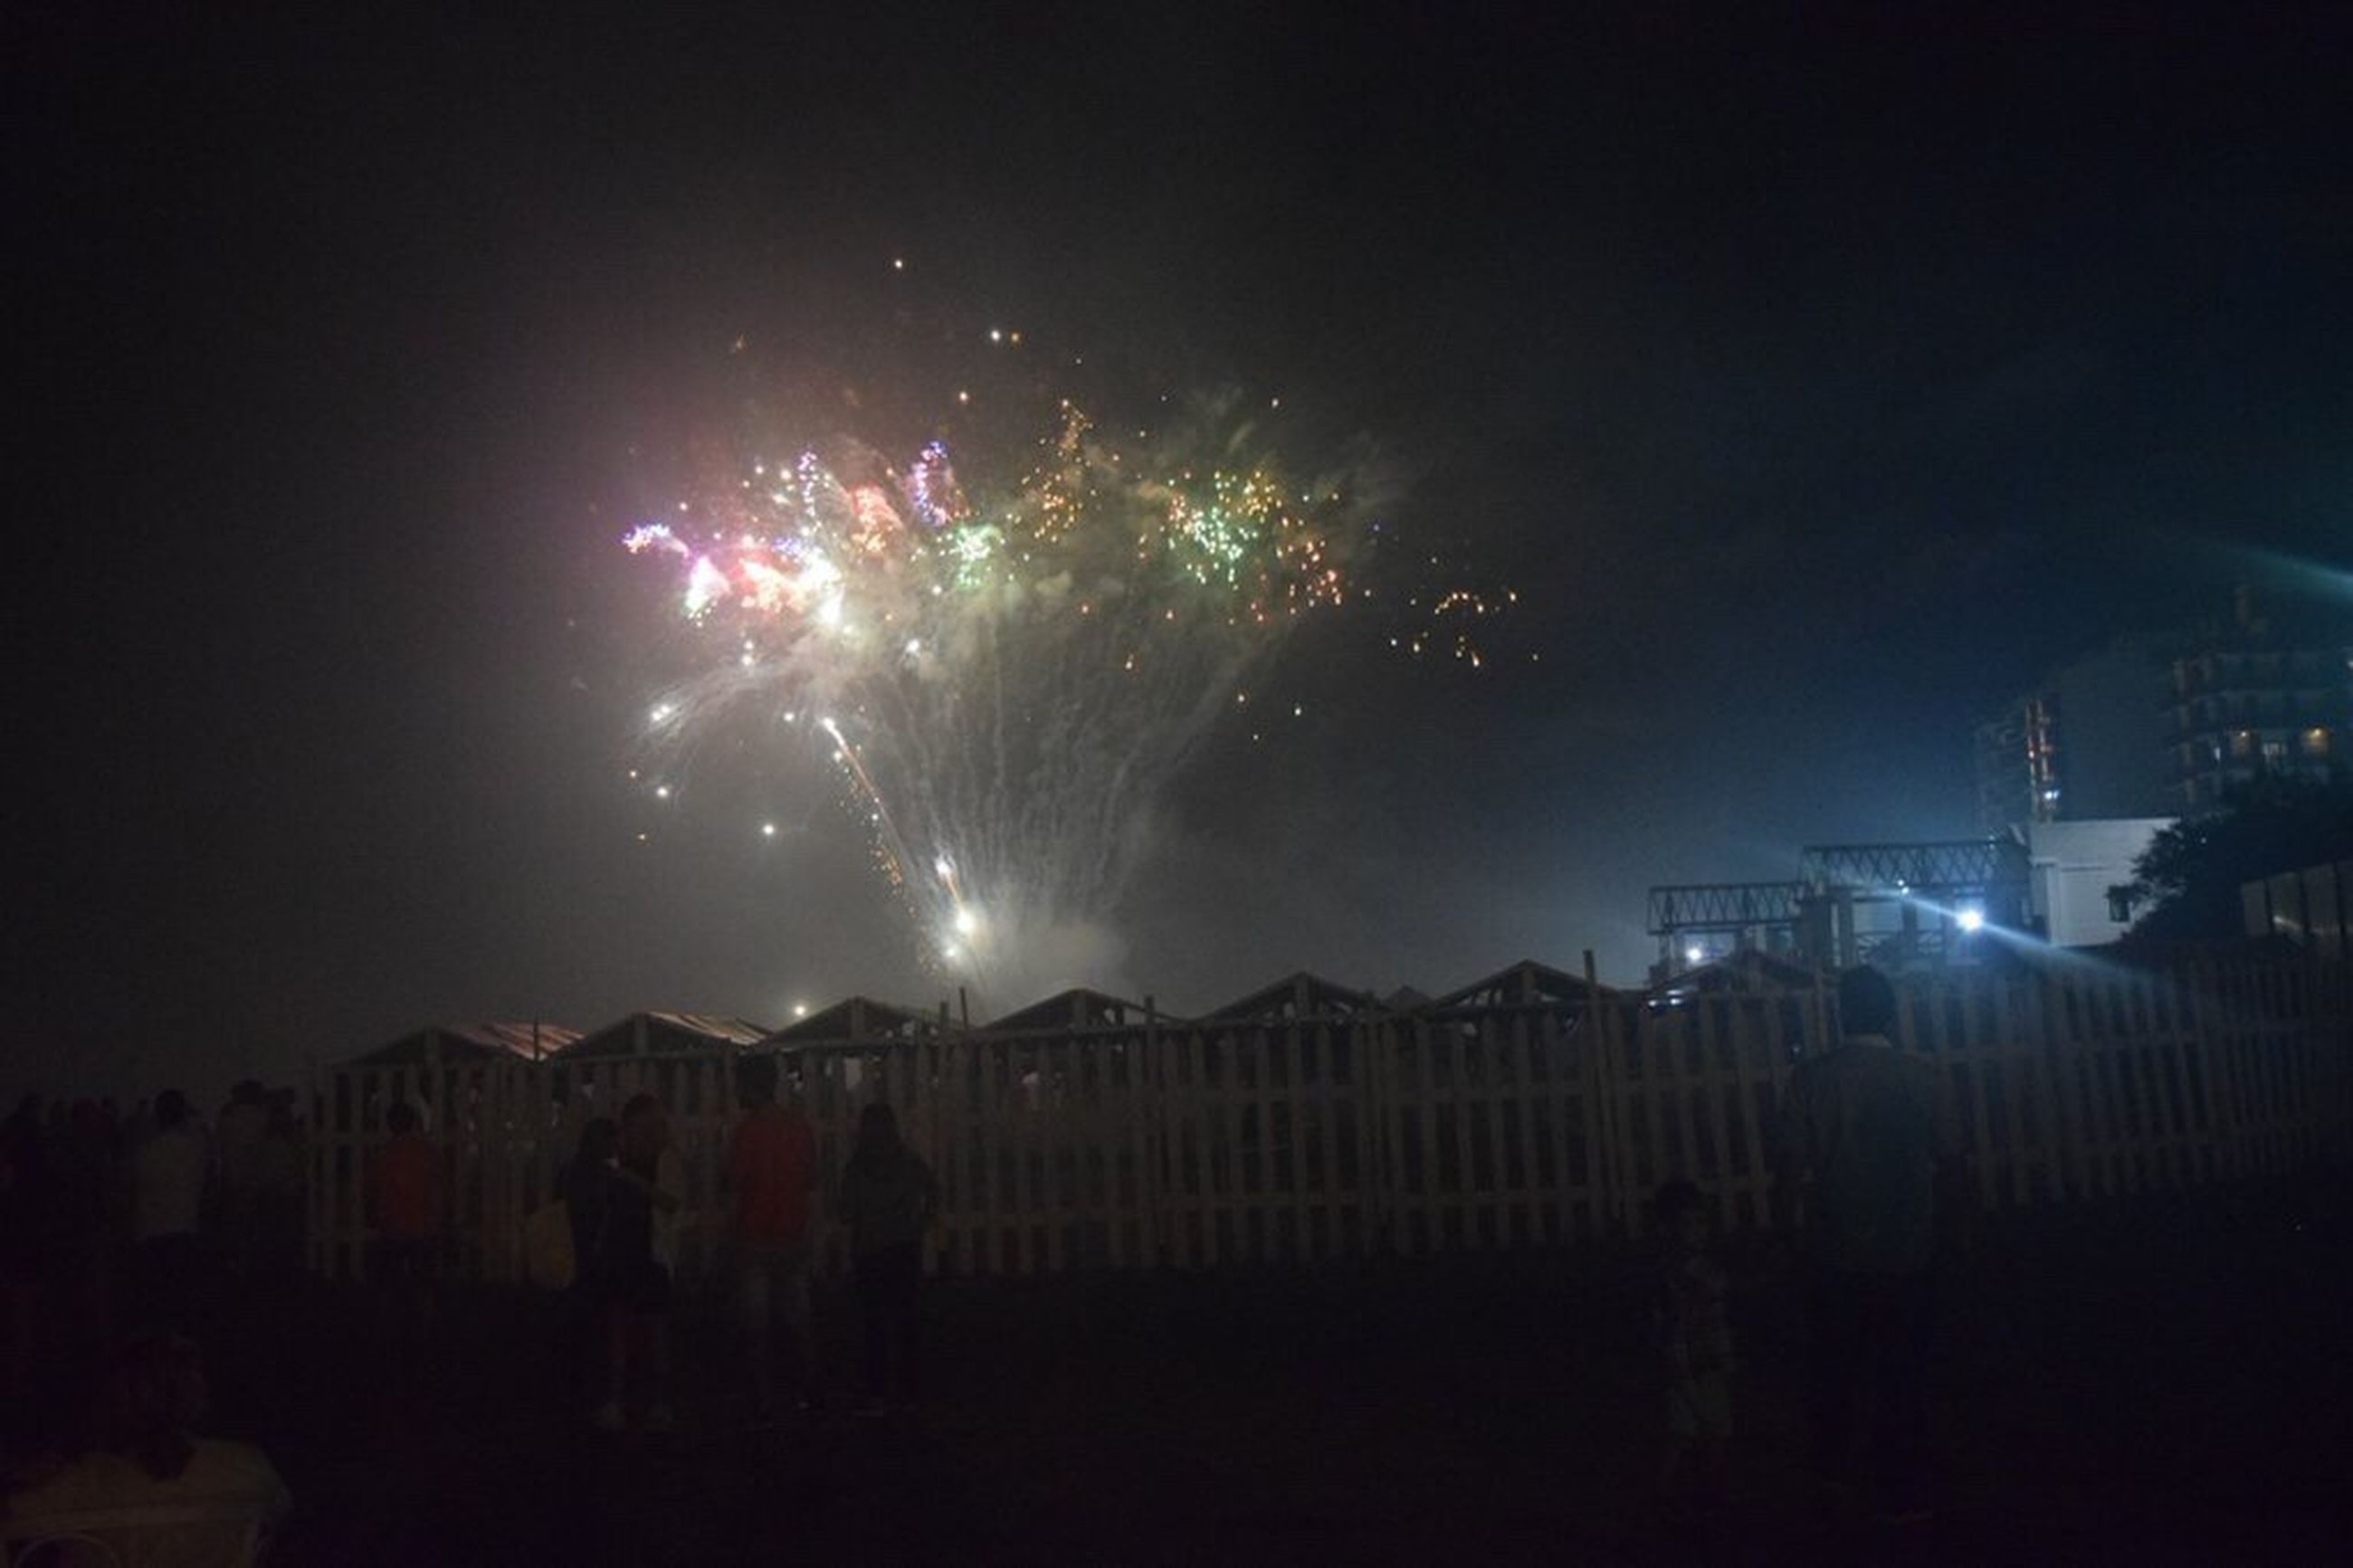 night, built structure, exploding, firework display, illuminated, architecture, building exterior, sky, firework - man made object, outdoors, celebration, event, arts culture and entertainment, cityscape, no people, city, firework